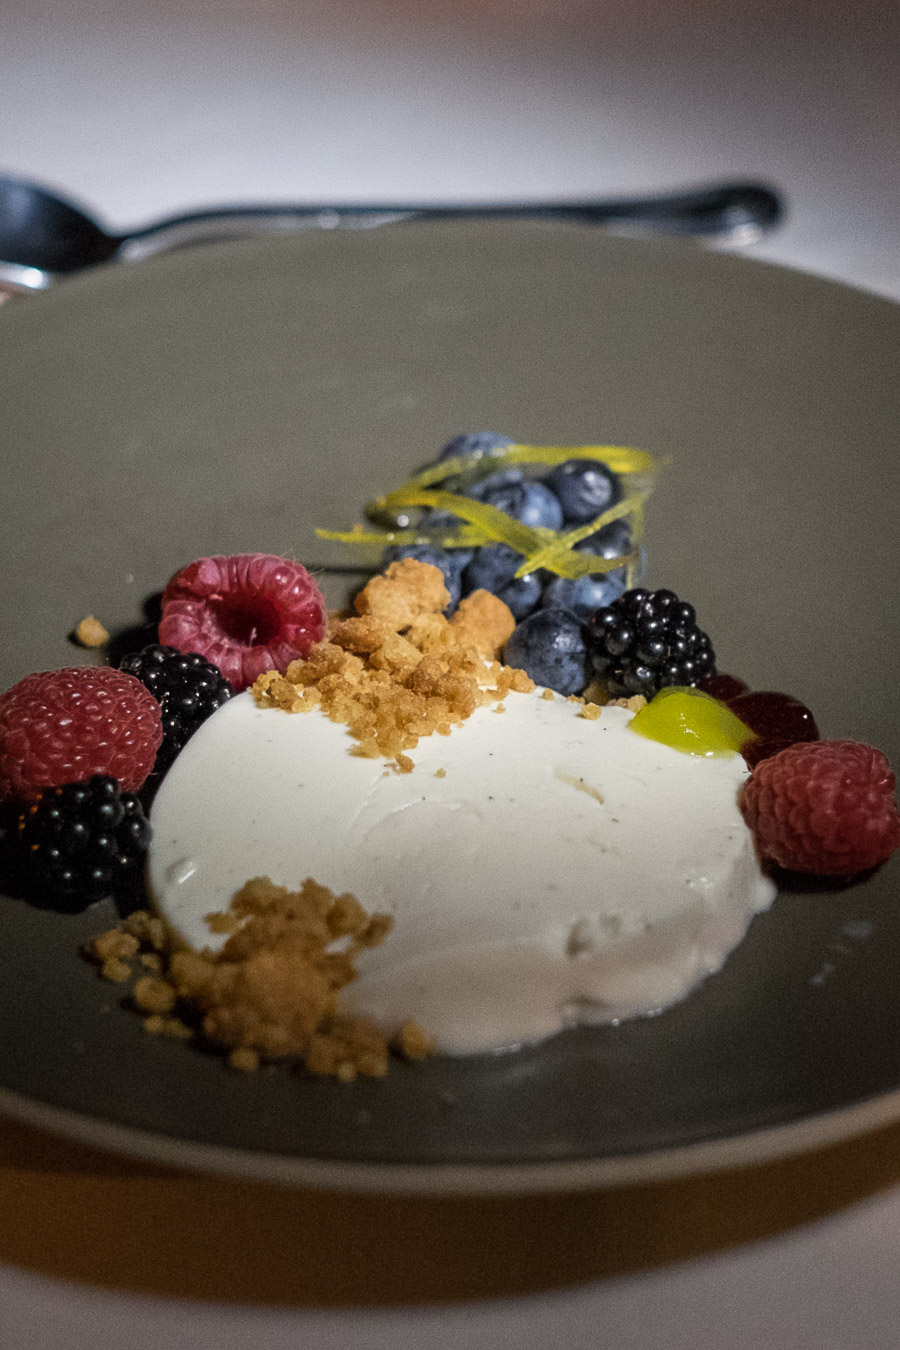 Berries and cream (US$10)  - buttermilk panna cotta, seasonal berries, lemon peel, lemon gel, Bordeaux cookie crumbles